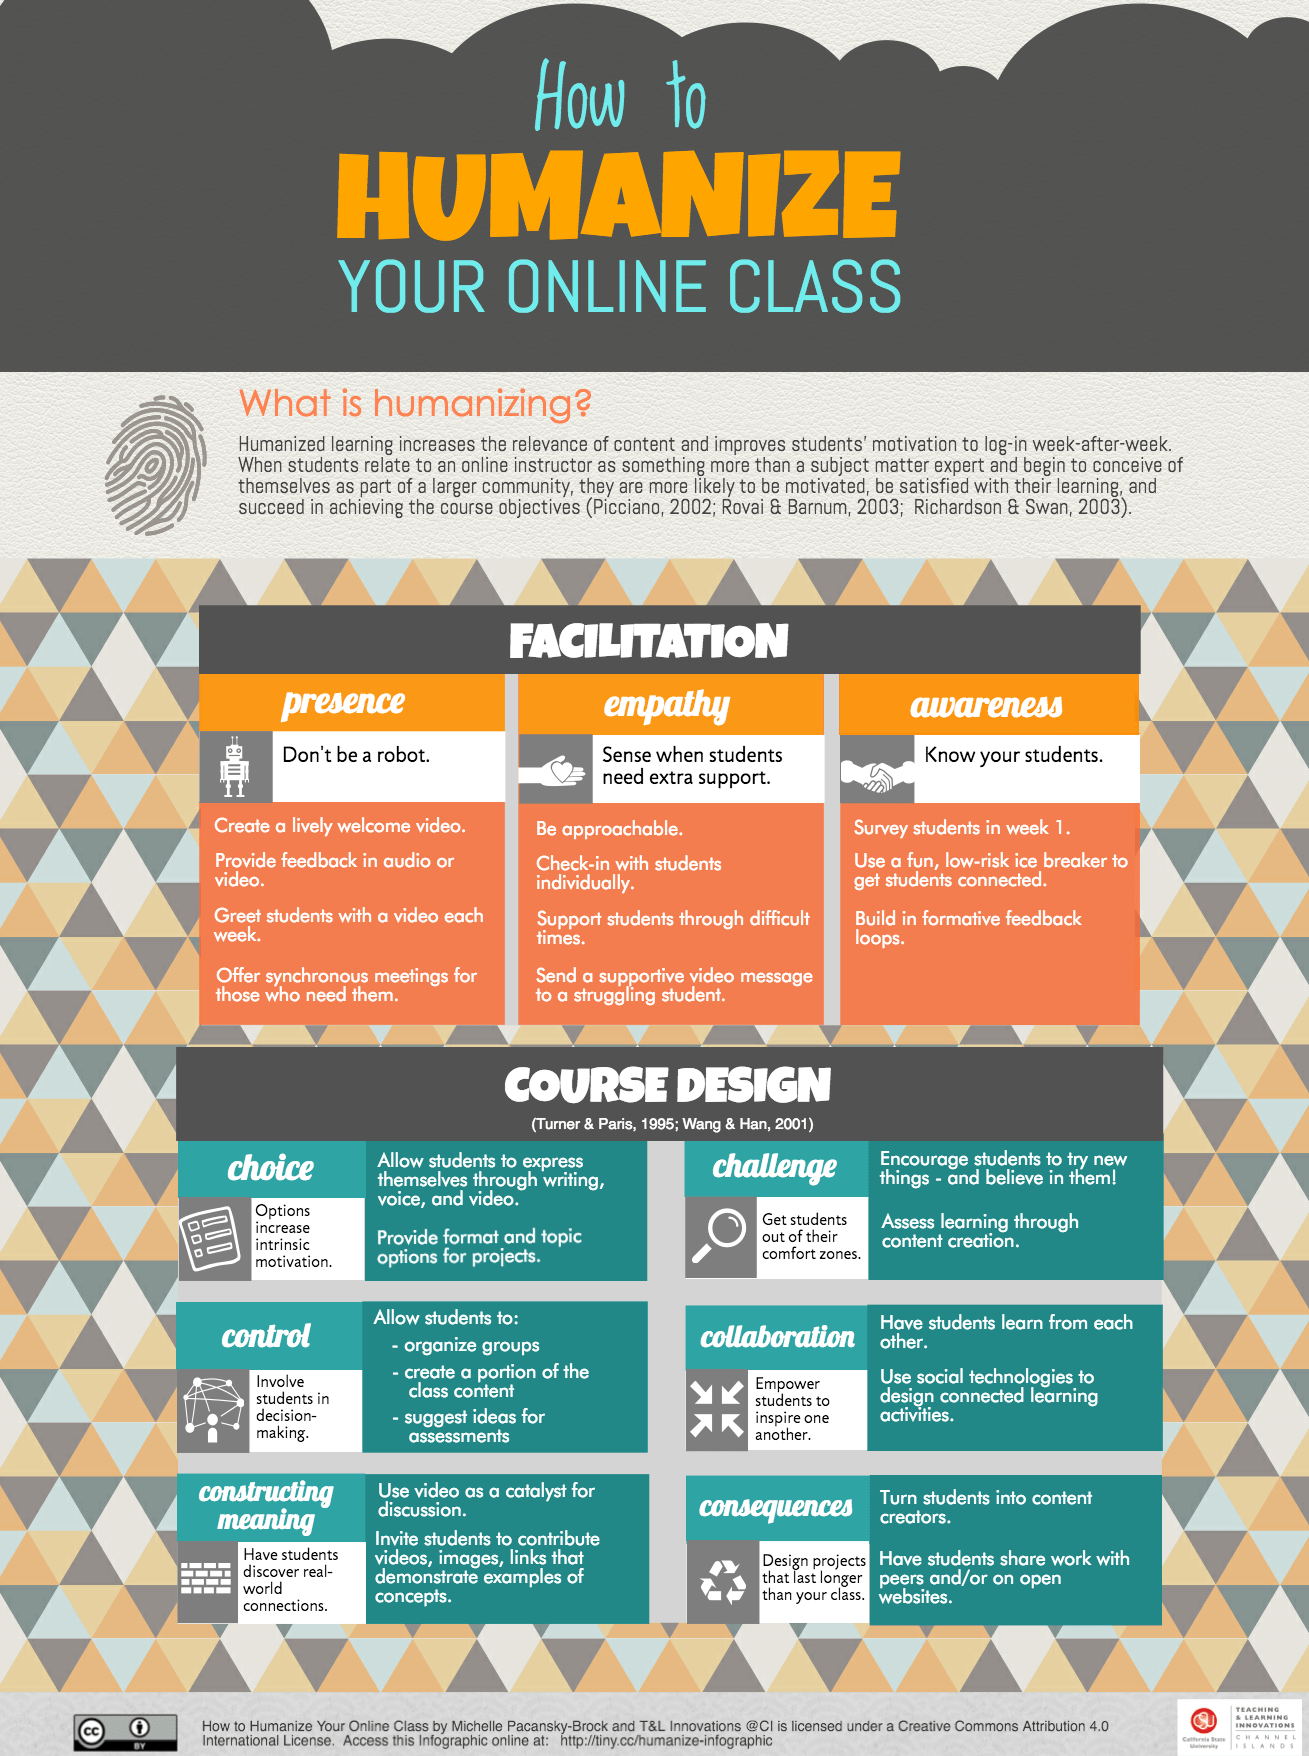 How to Humanizing Your Online Class: framework for facilitation and course design